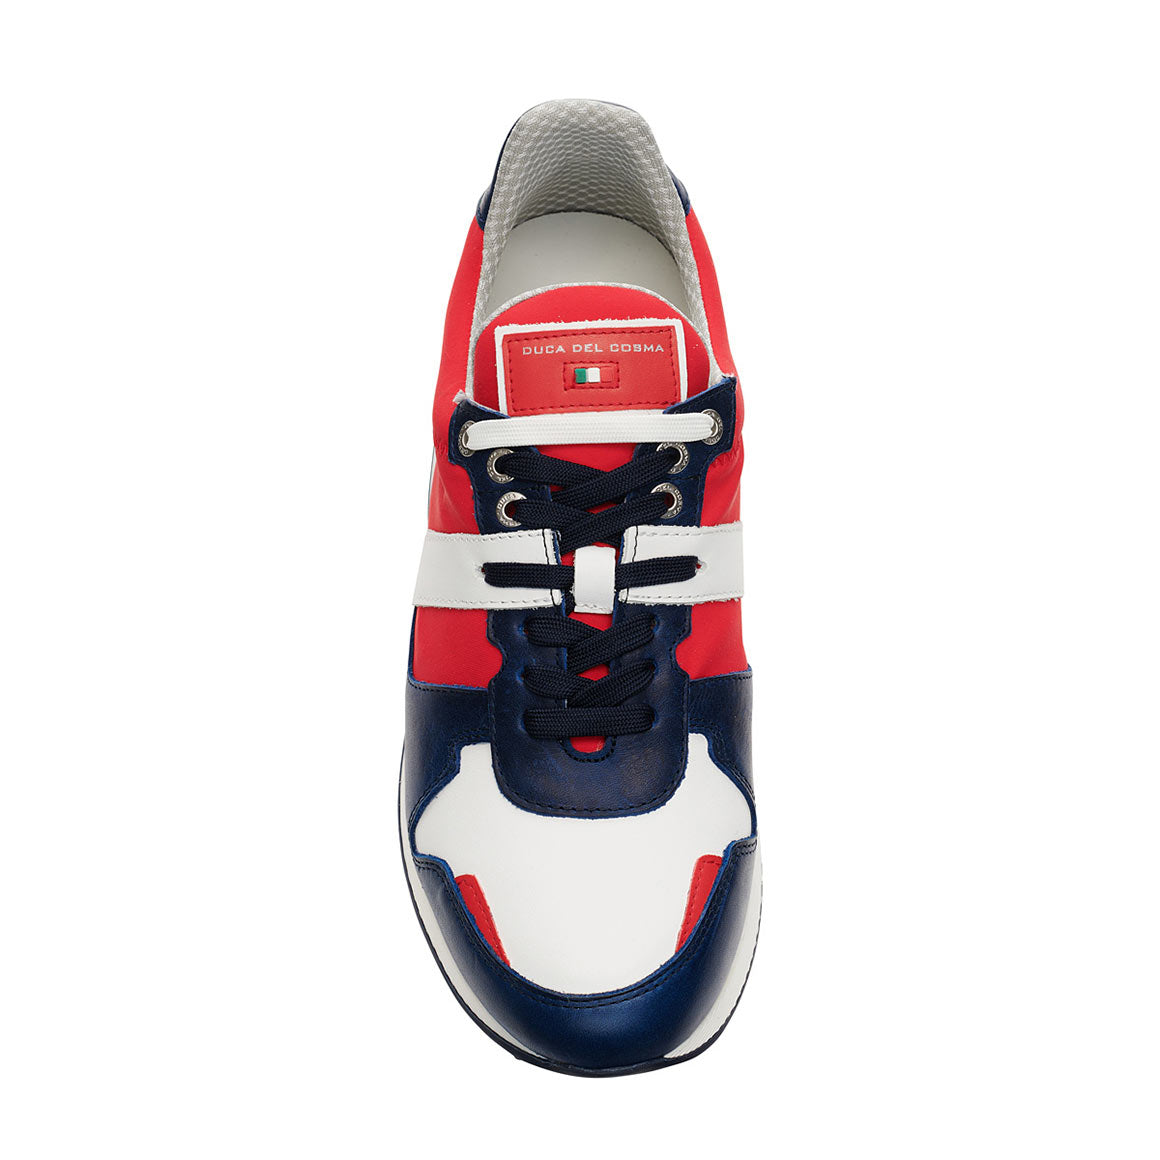 Men's Energy Navy / White / Red Golf Shoe